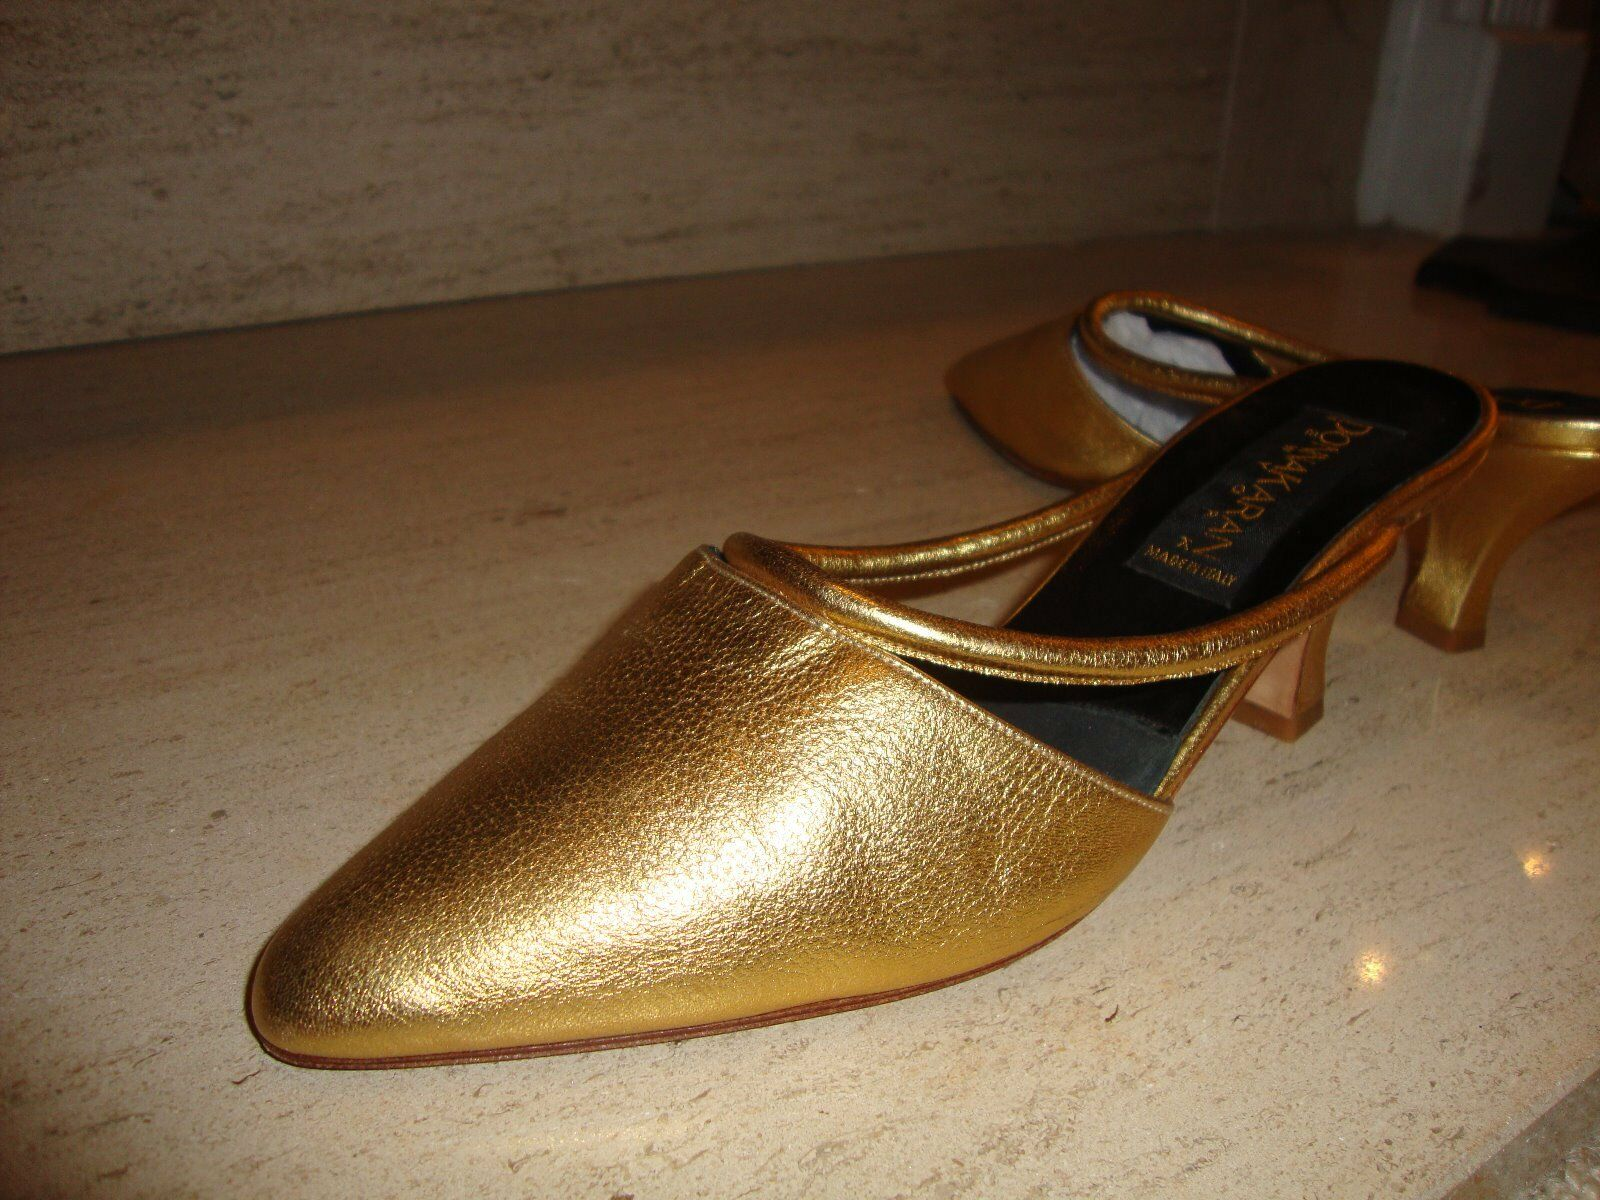 GORGEOUS, NEW GOLD LEATHER MULES BY DONNA KARAN ITALIAN COLLECTION